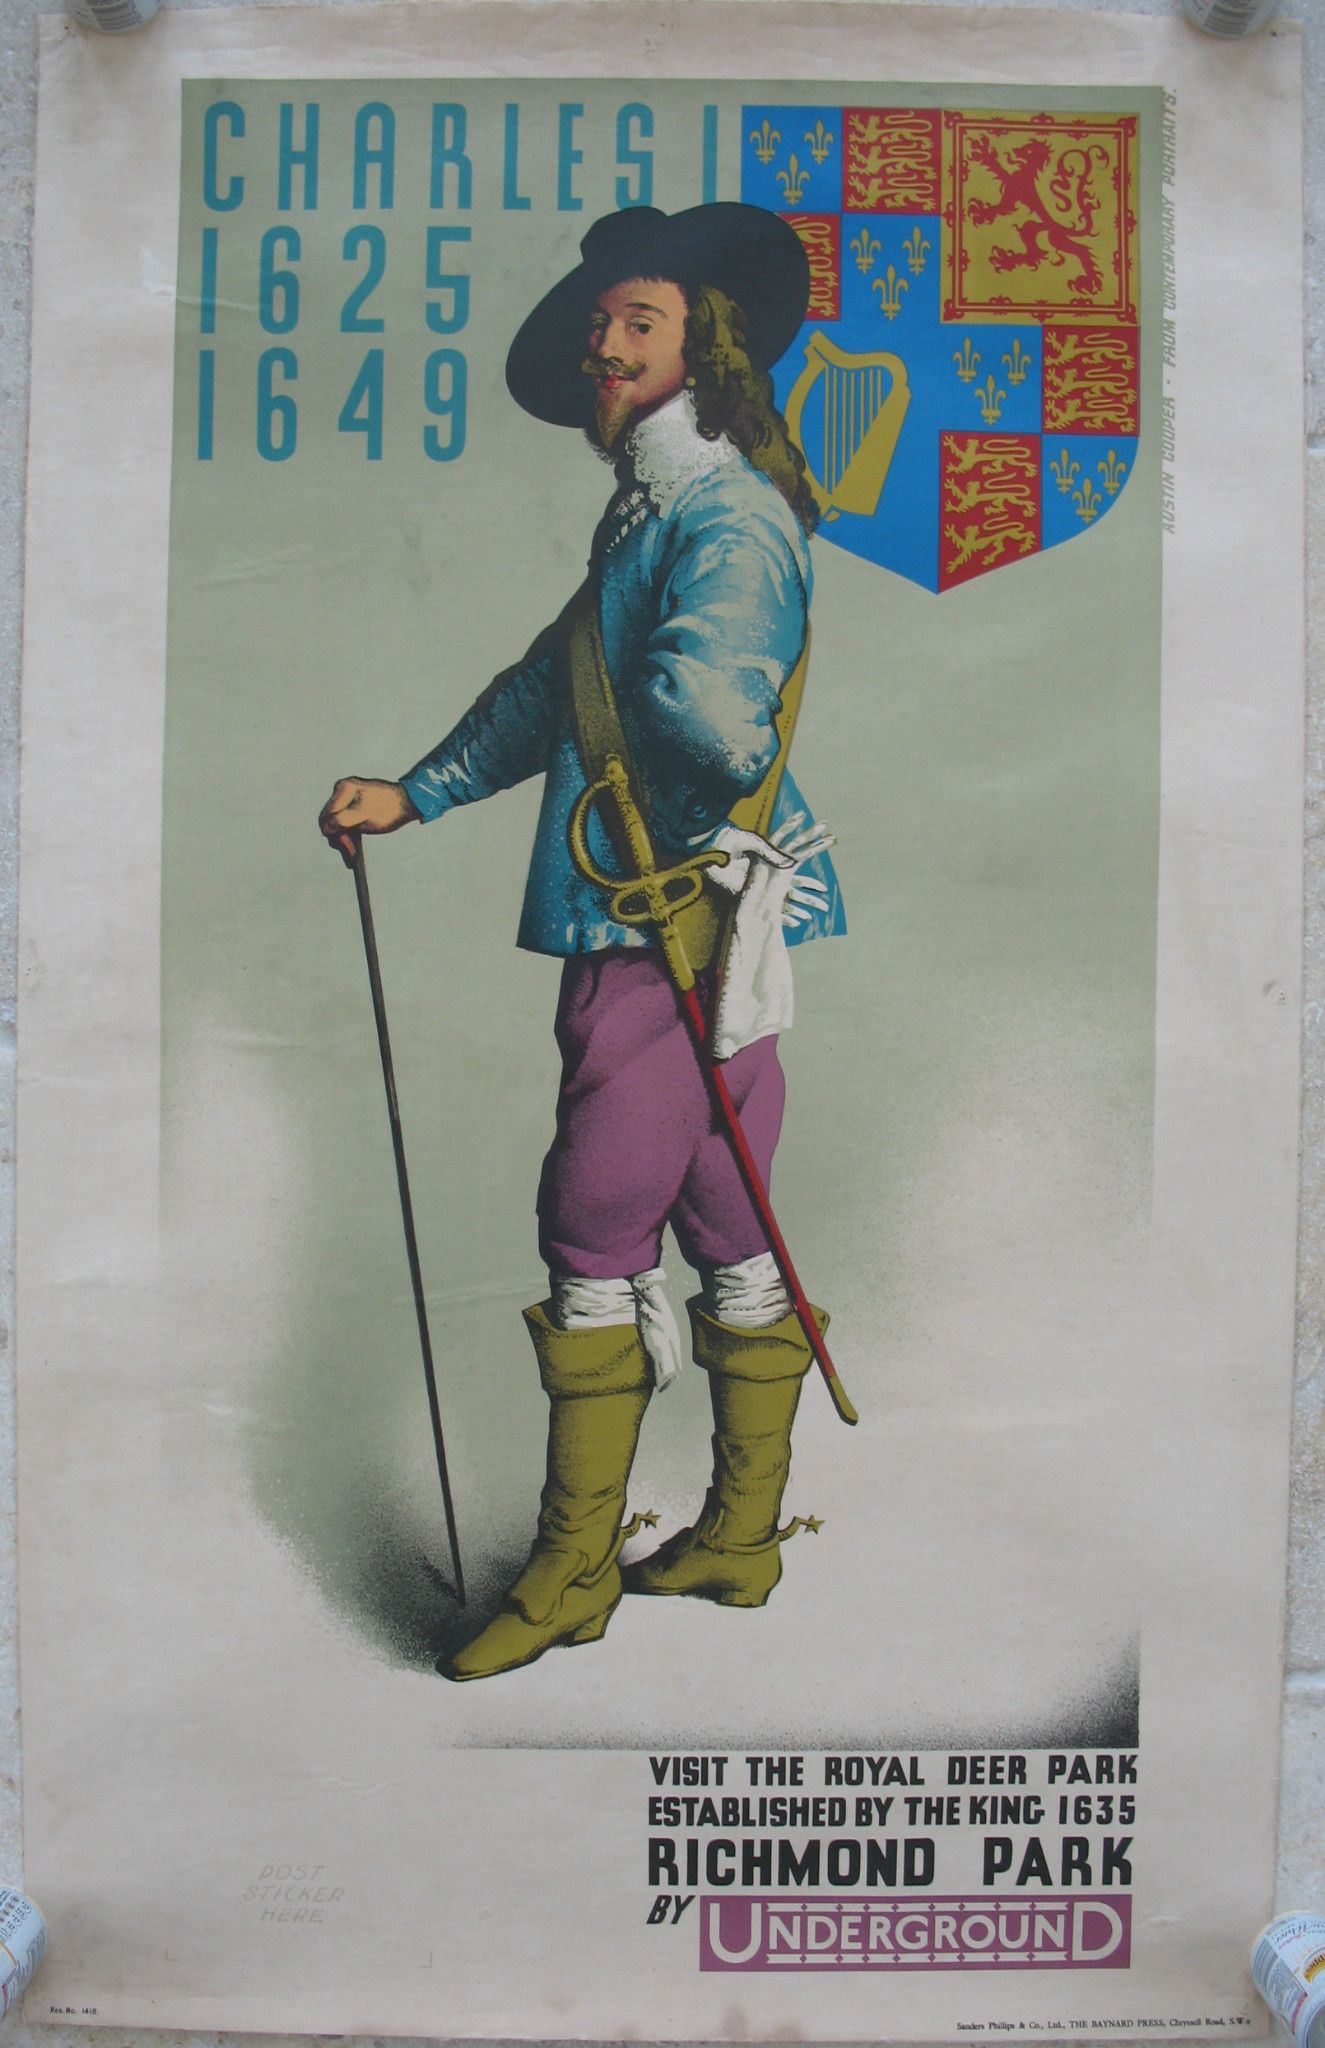 Richmond Park by Underground (Charles I), by Austin Cooper. An Underground (London Transport) poster showing Austin Cooper's vision of King Charles I and his coat of arms, and requesting that we visit the Royal Deer Park at Richmond which was established by the King in 1635. This poster was acquired from a family in Australia who had owned it since 1978, it having already been linen-backed at that time. Original Vintage Railway Poster sold by originalrailwayposters.co.uk